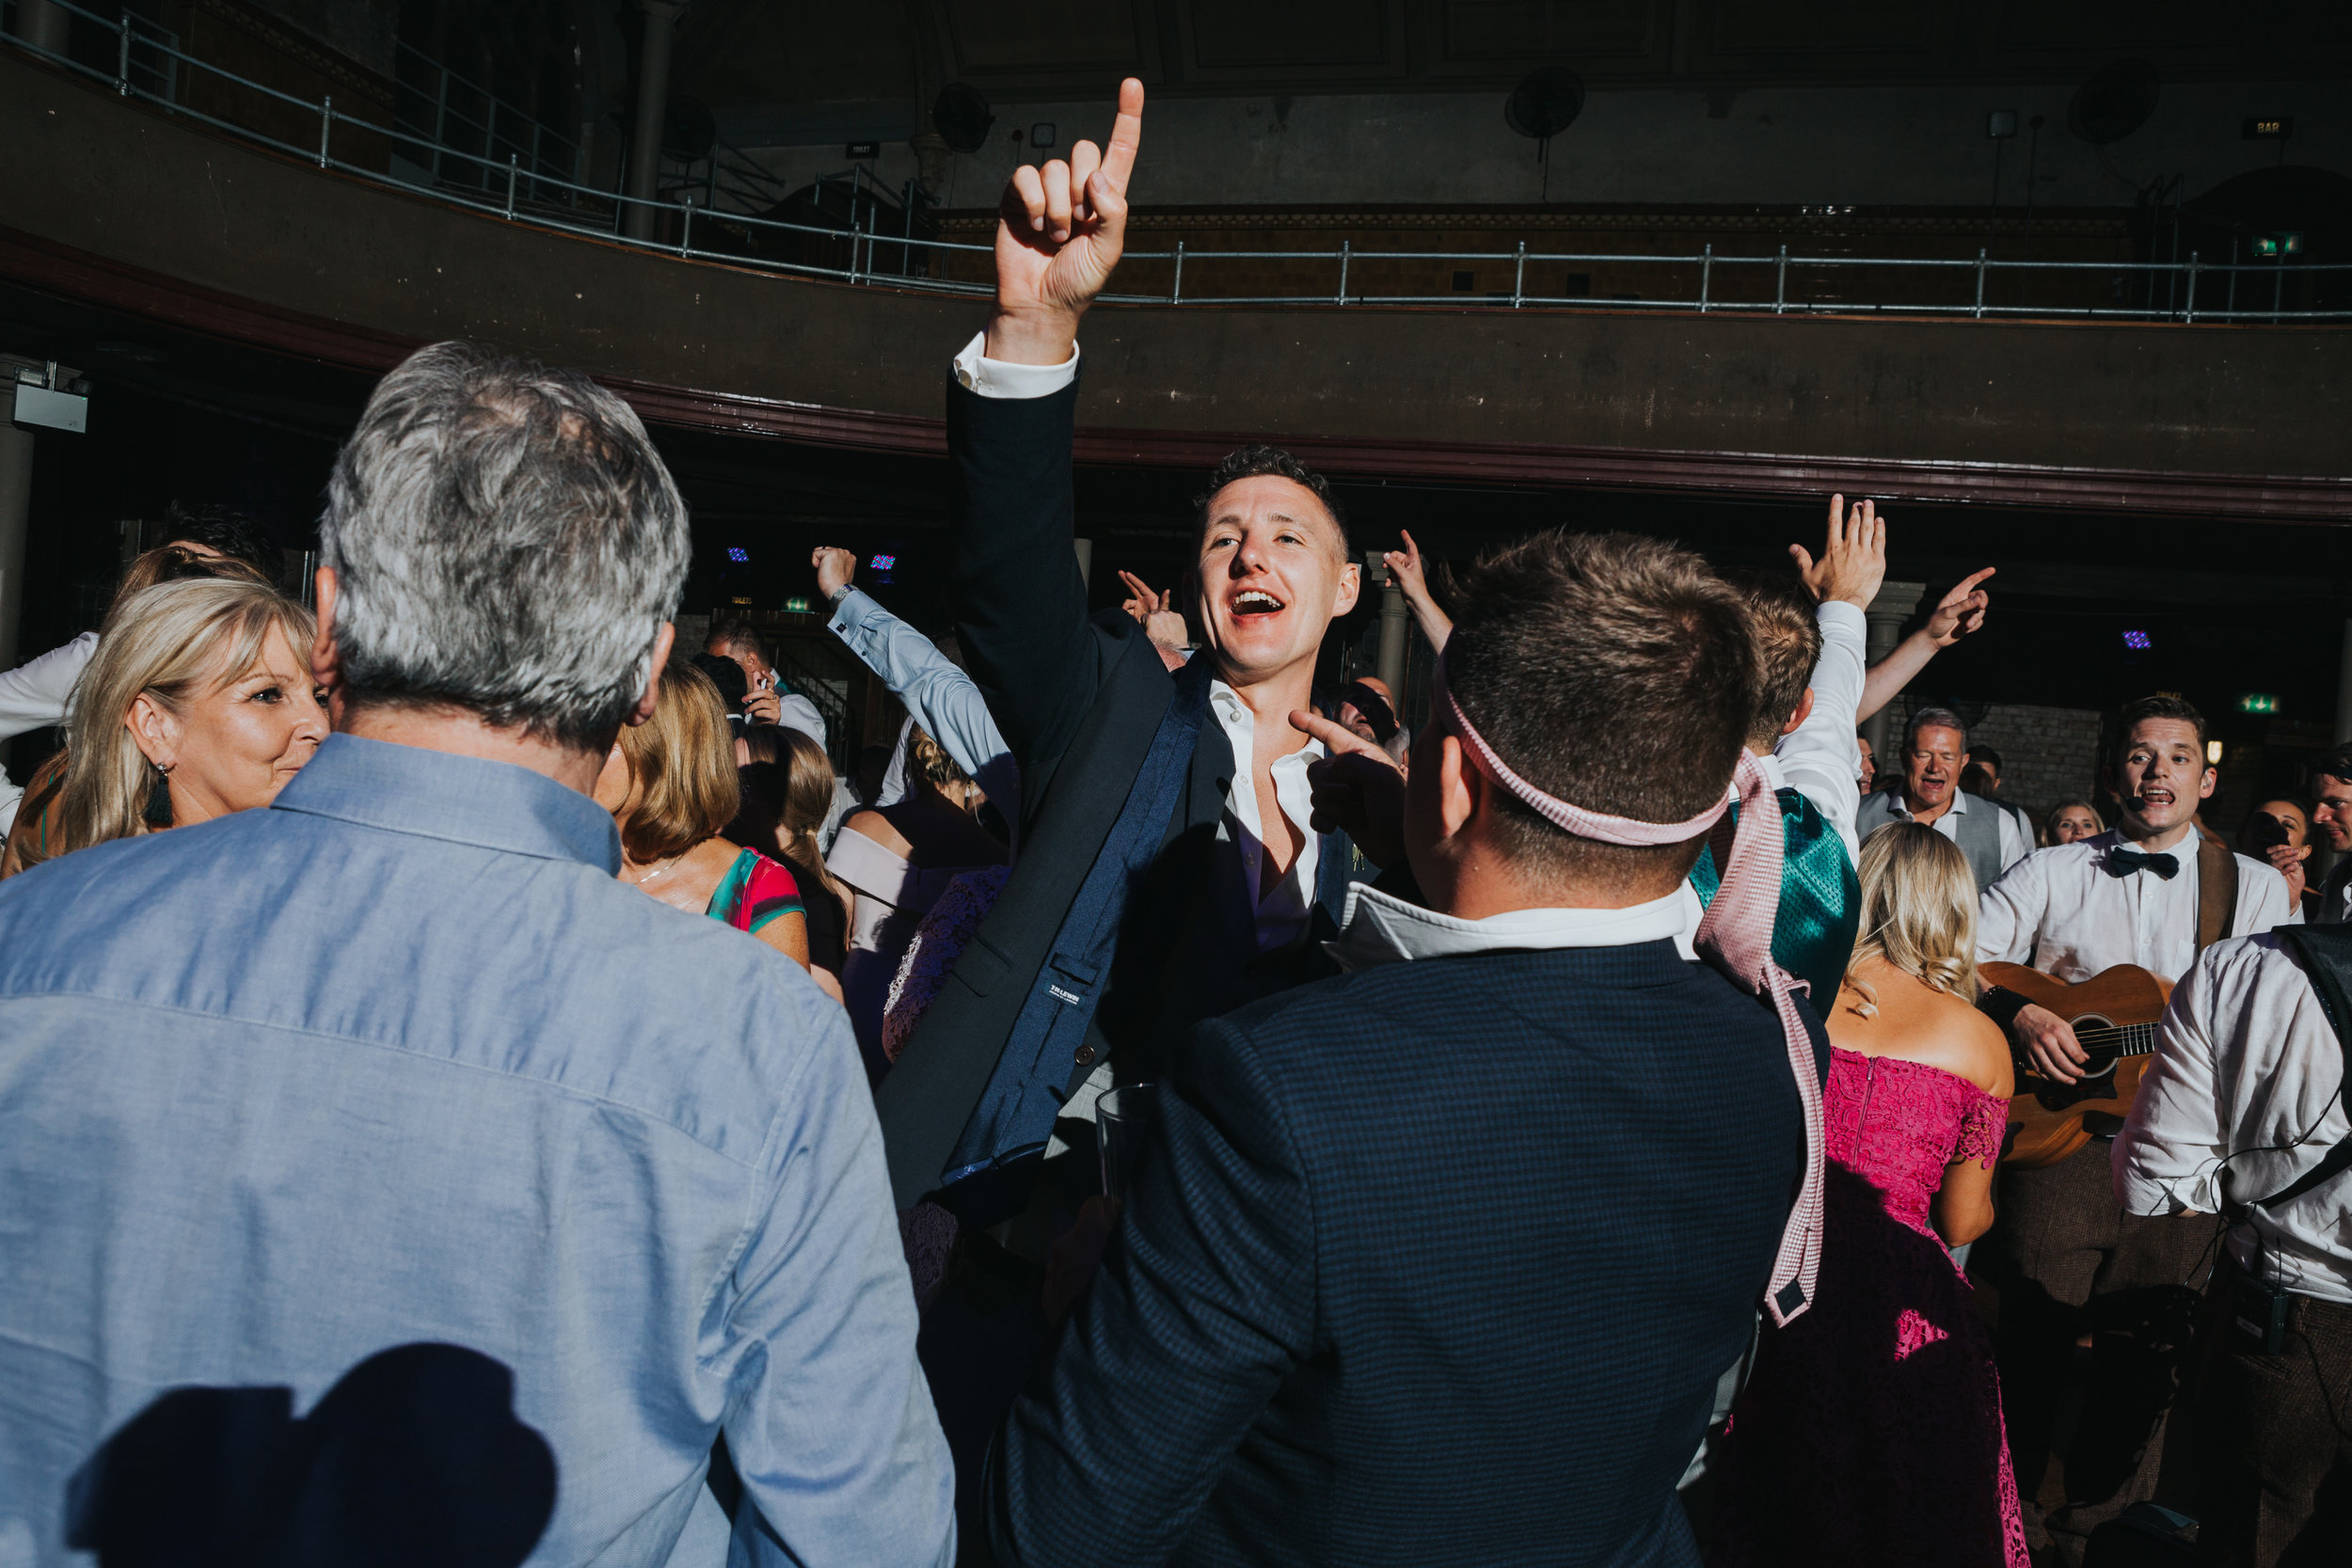 Male weddings guests dance with their ties tied around their heads, Rambo style.